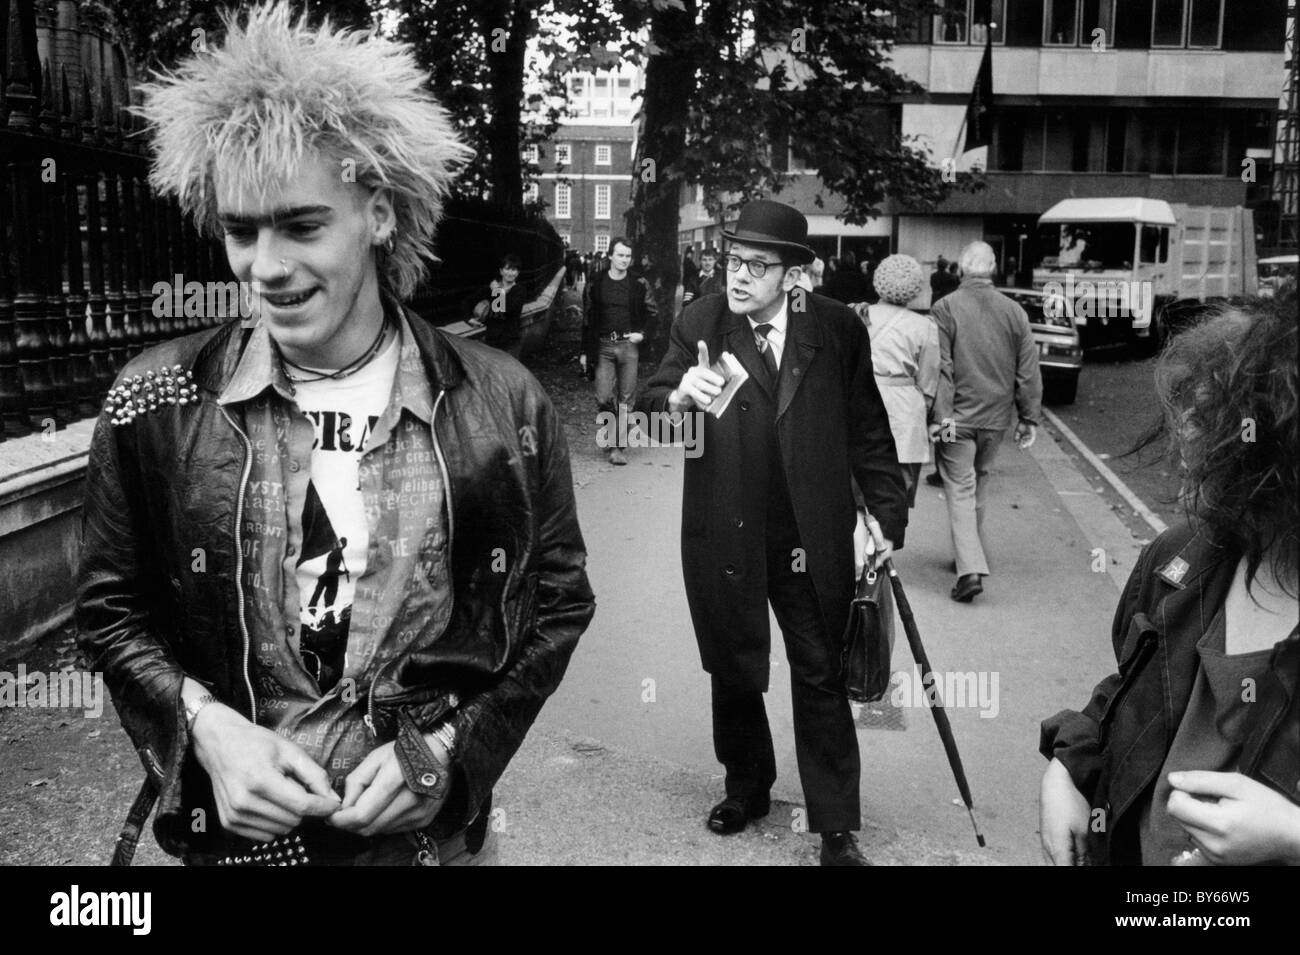 A man who appears to be a city gent scolds a punk in the street near St Paul's Cathedral London - Stock Image